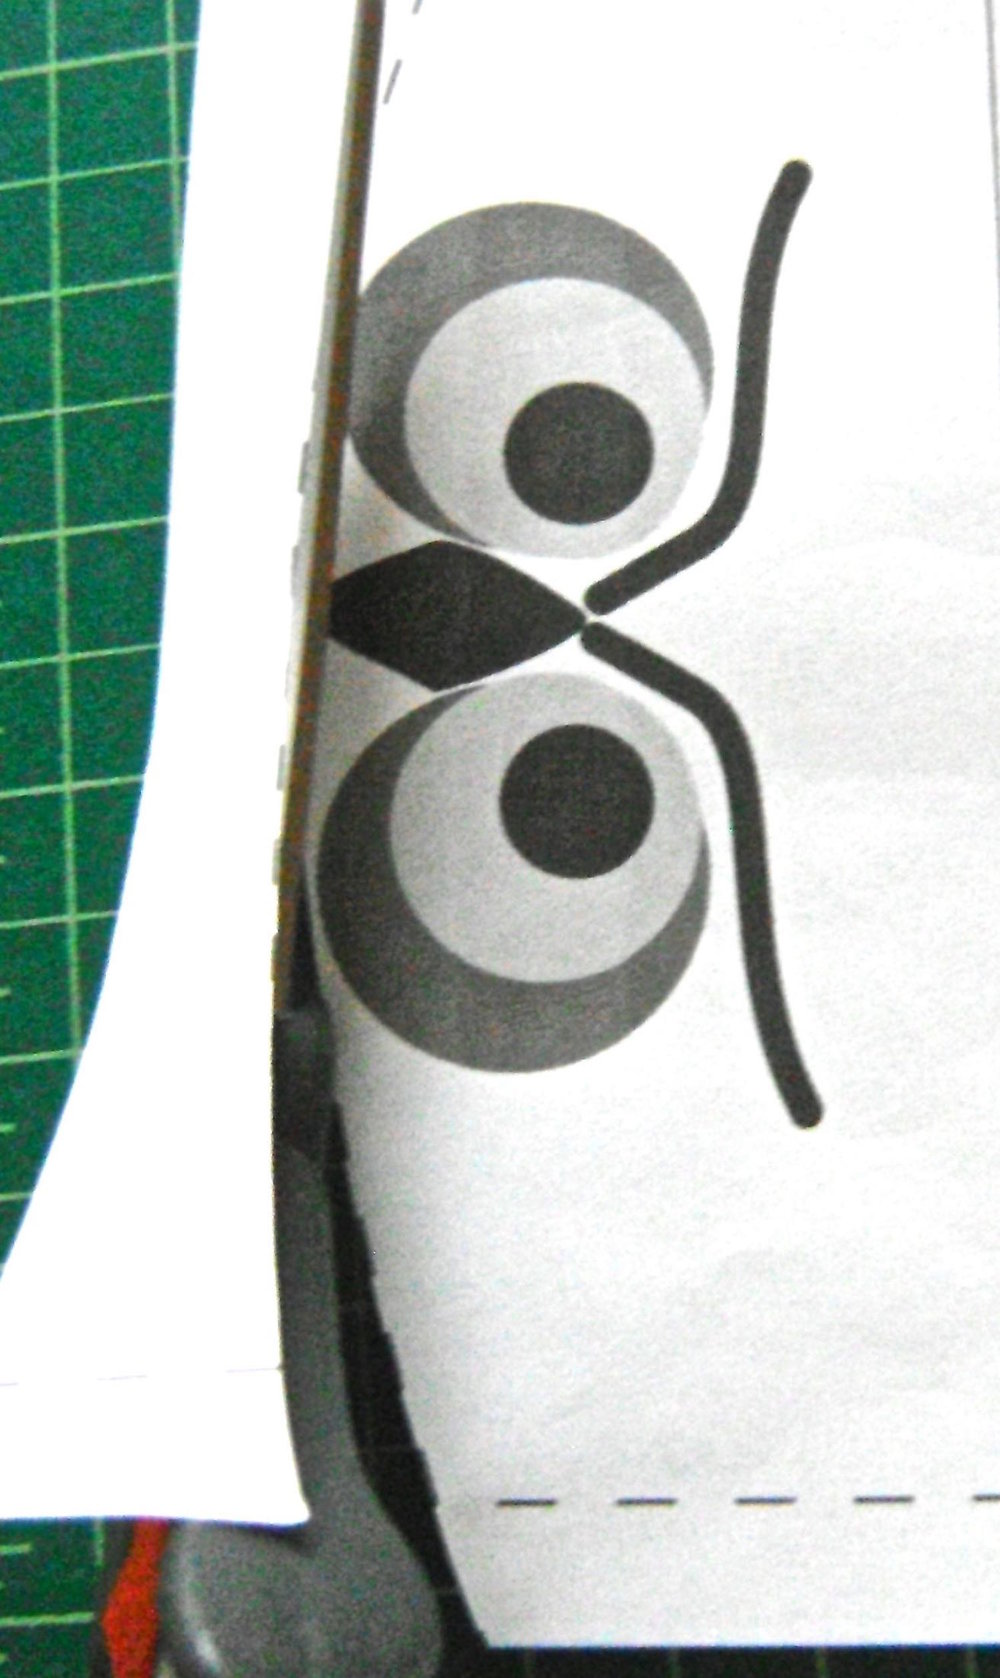 step 9 - Trim the seam allowance from the front flap pattern piece and align the pattern with the fabric edge.